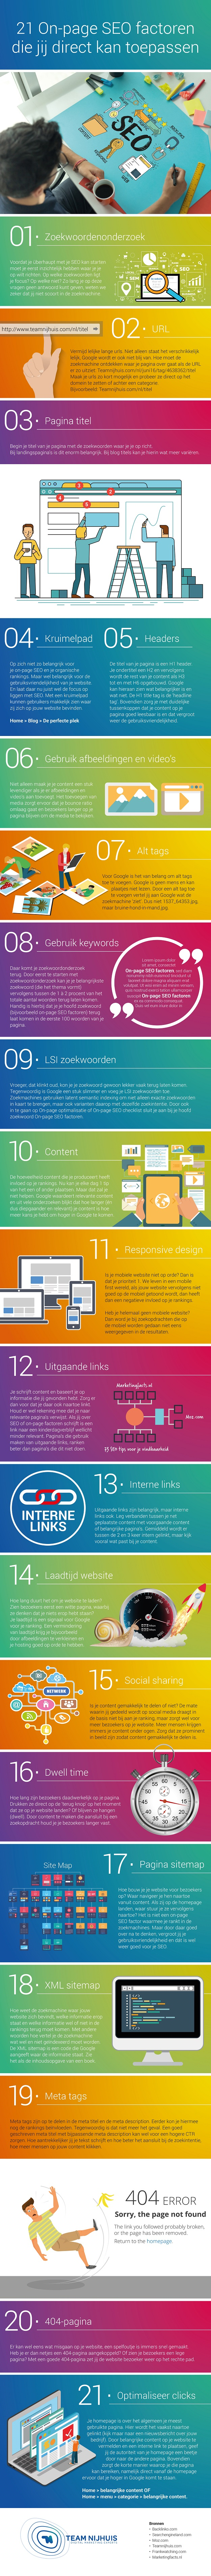 21-on-page-seo-factoren-infograhic-team-nijhuis